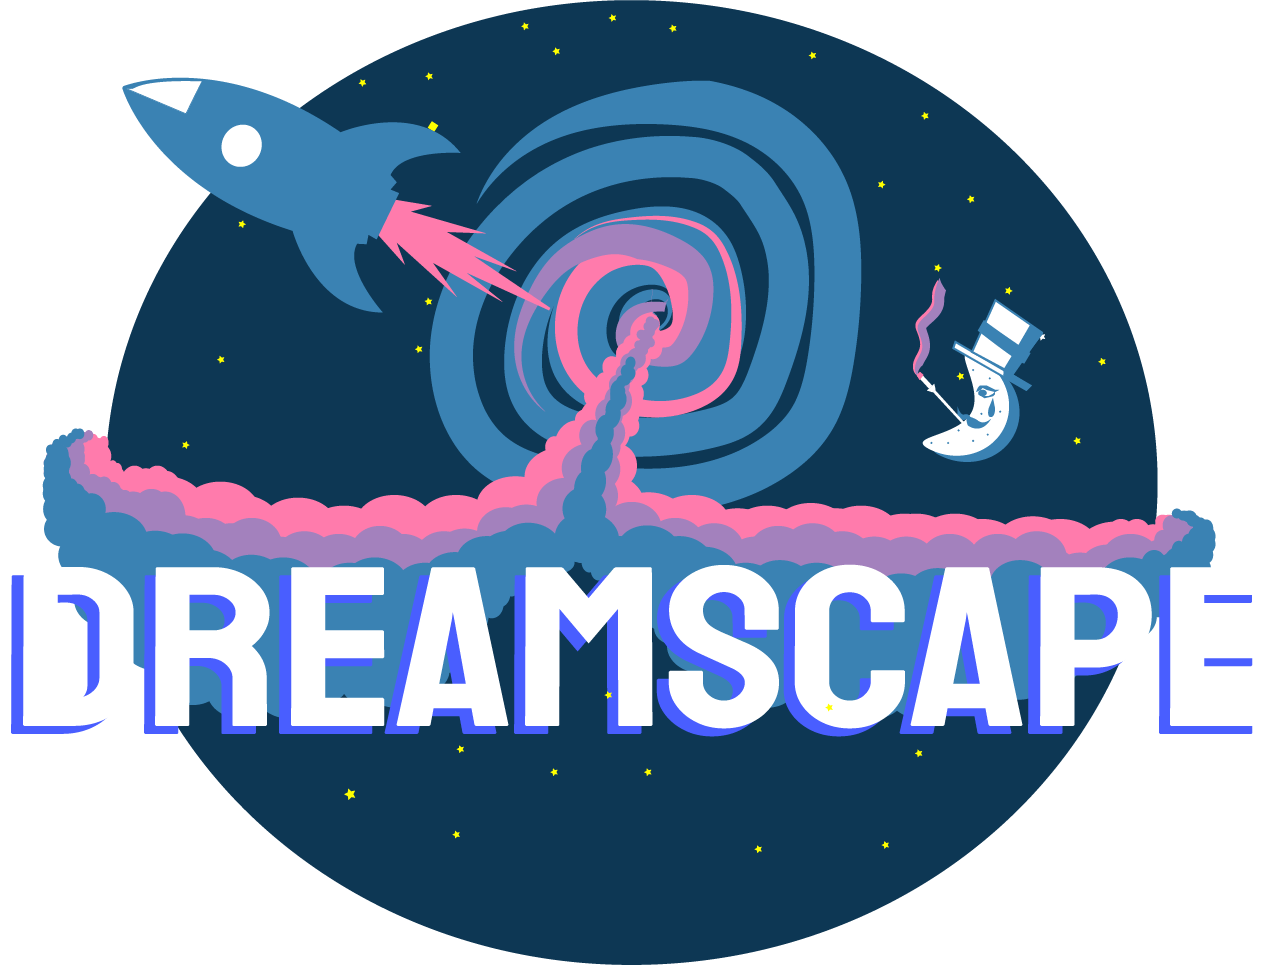 dreamscape logo with rocket ship